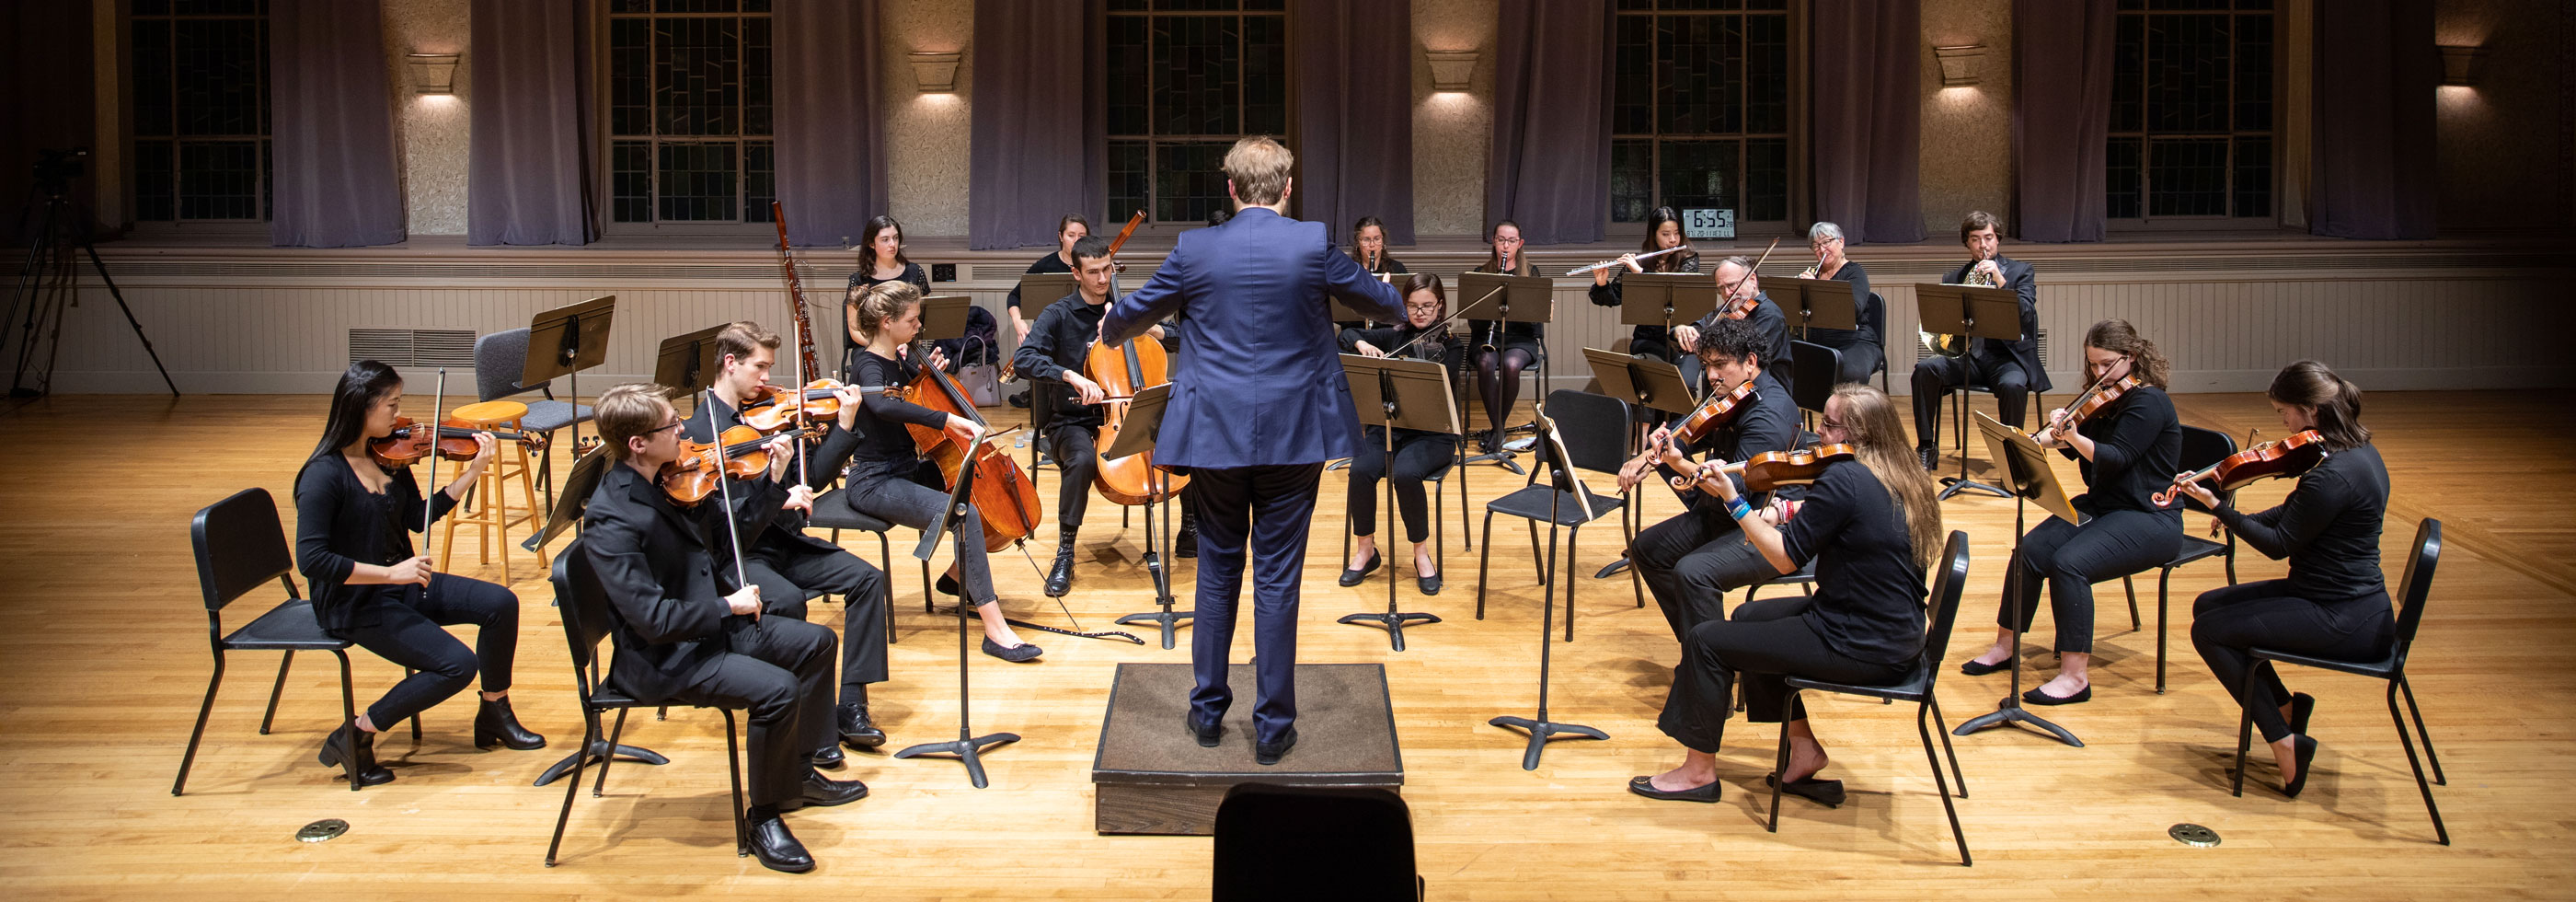 an orchestra performs with a conductor in the front